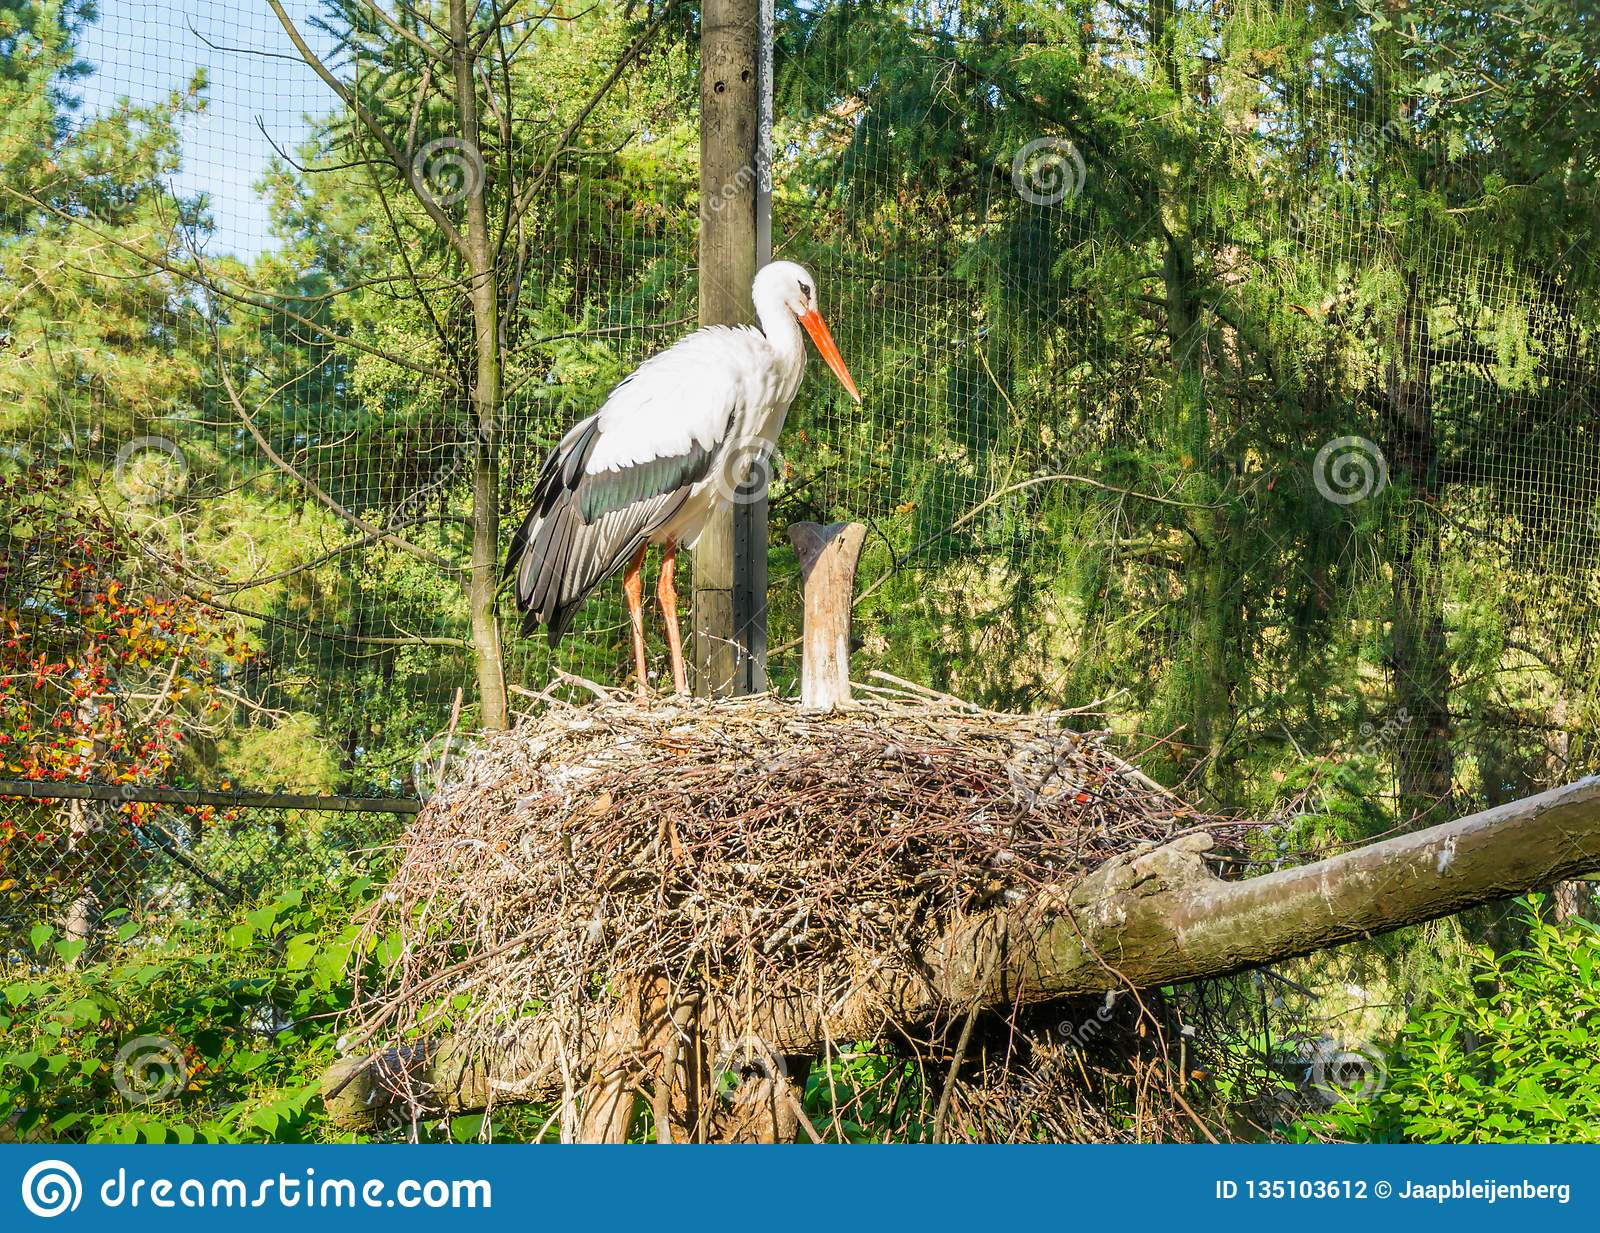 White Stork Standing In Its Nest, A African Bird That Migrated To